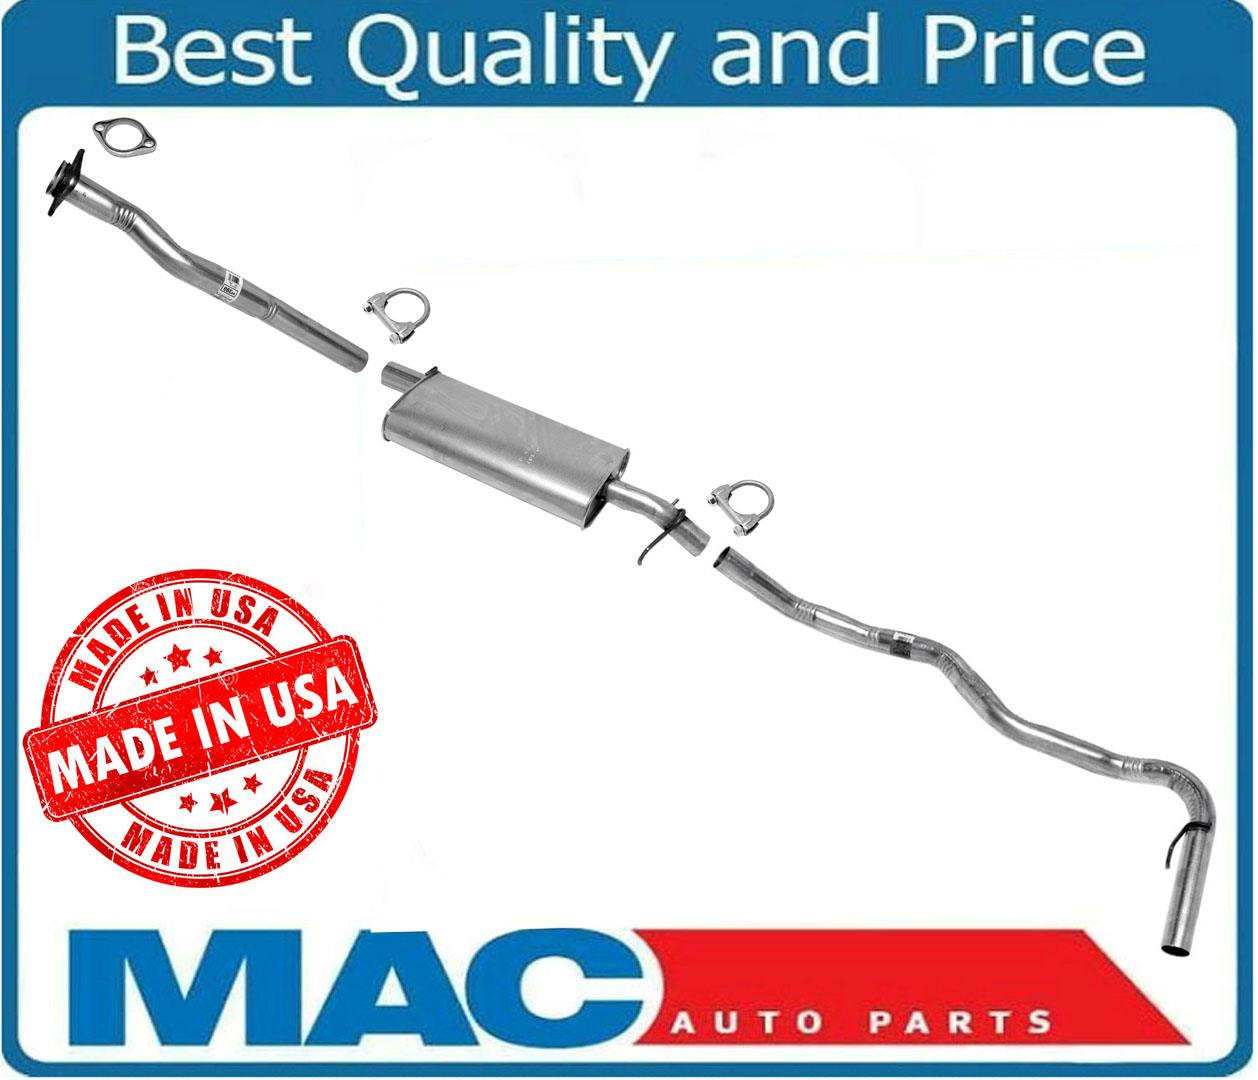 1992-1993 2 Wheel Drive S10 S15 2.8L 4.3L Pick Up 117 WB Muffler Exhaust System